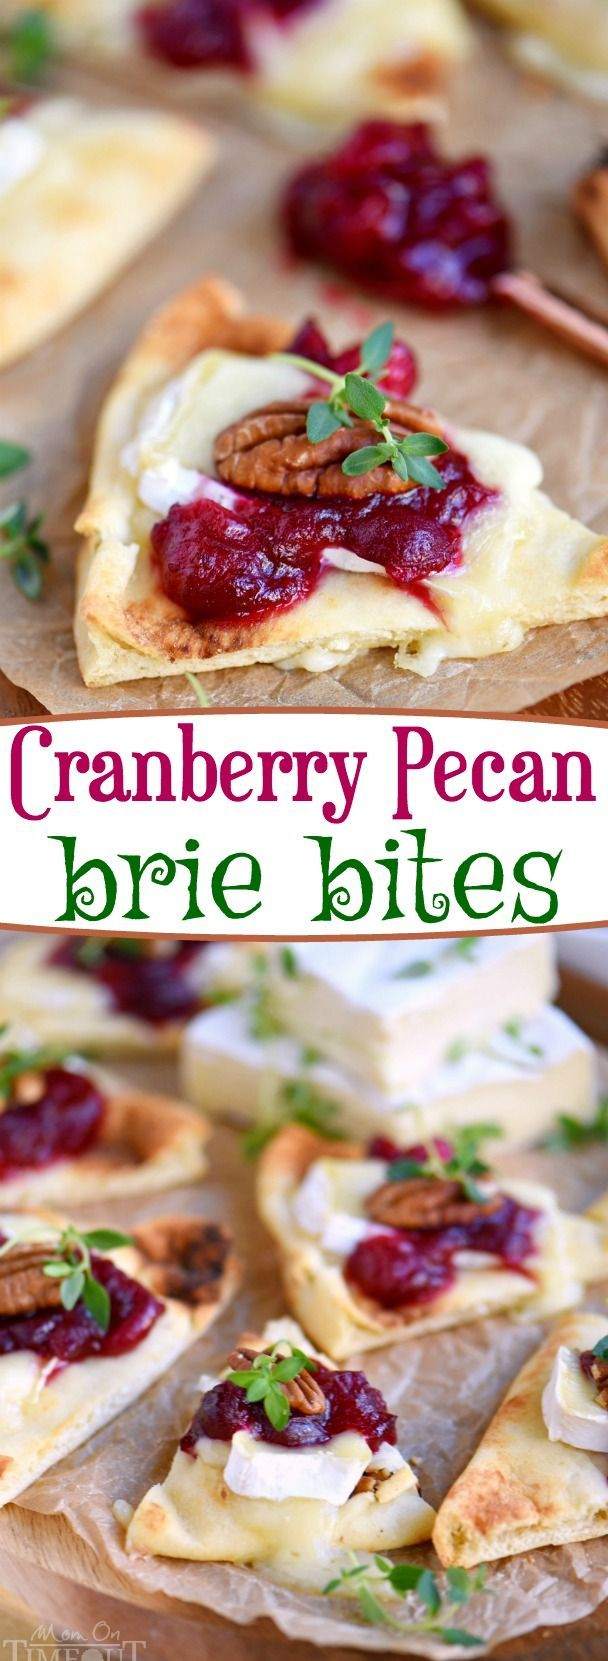 These Cranberry Pecan Brie Bites are perfect for holiday entertaining!